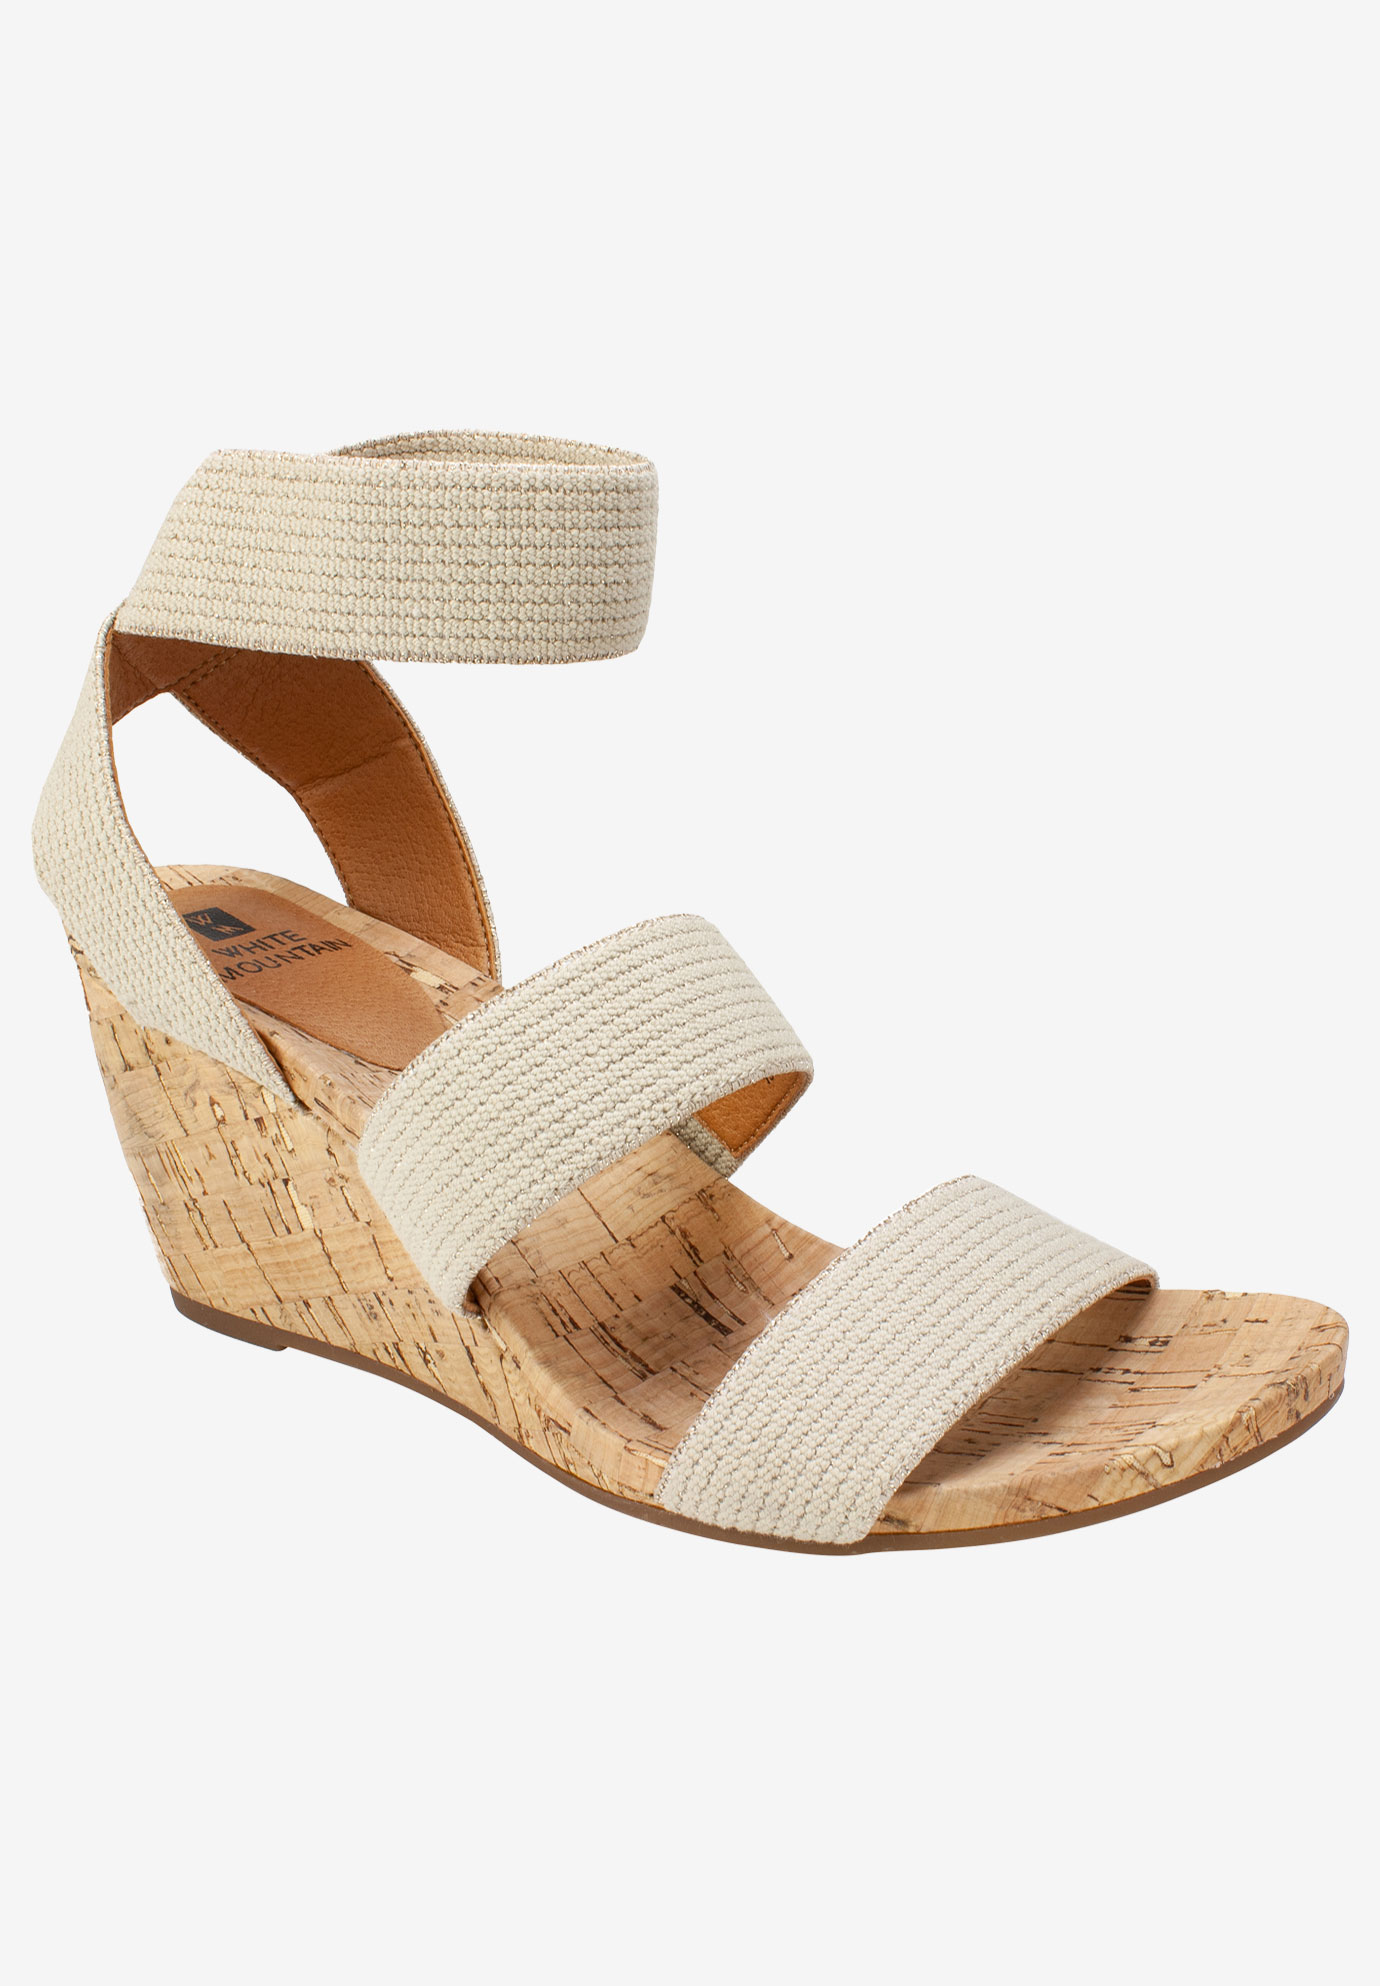 Phelix Sandal by White Mountain,